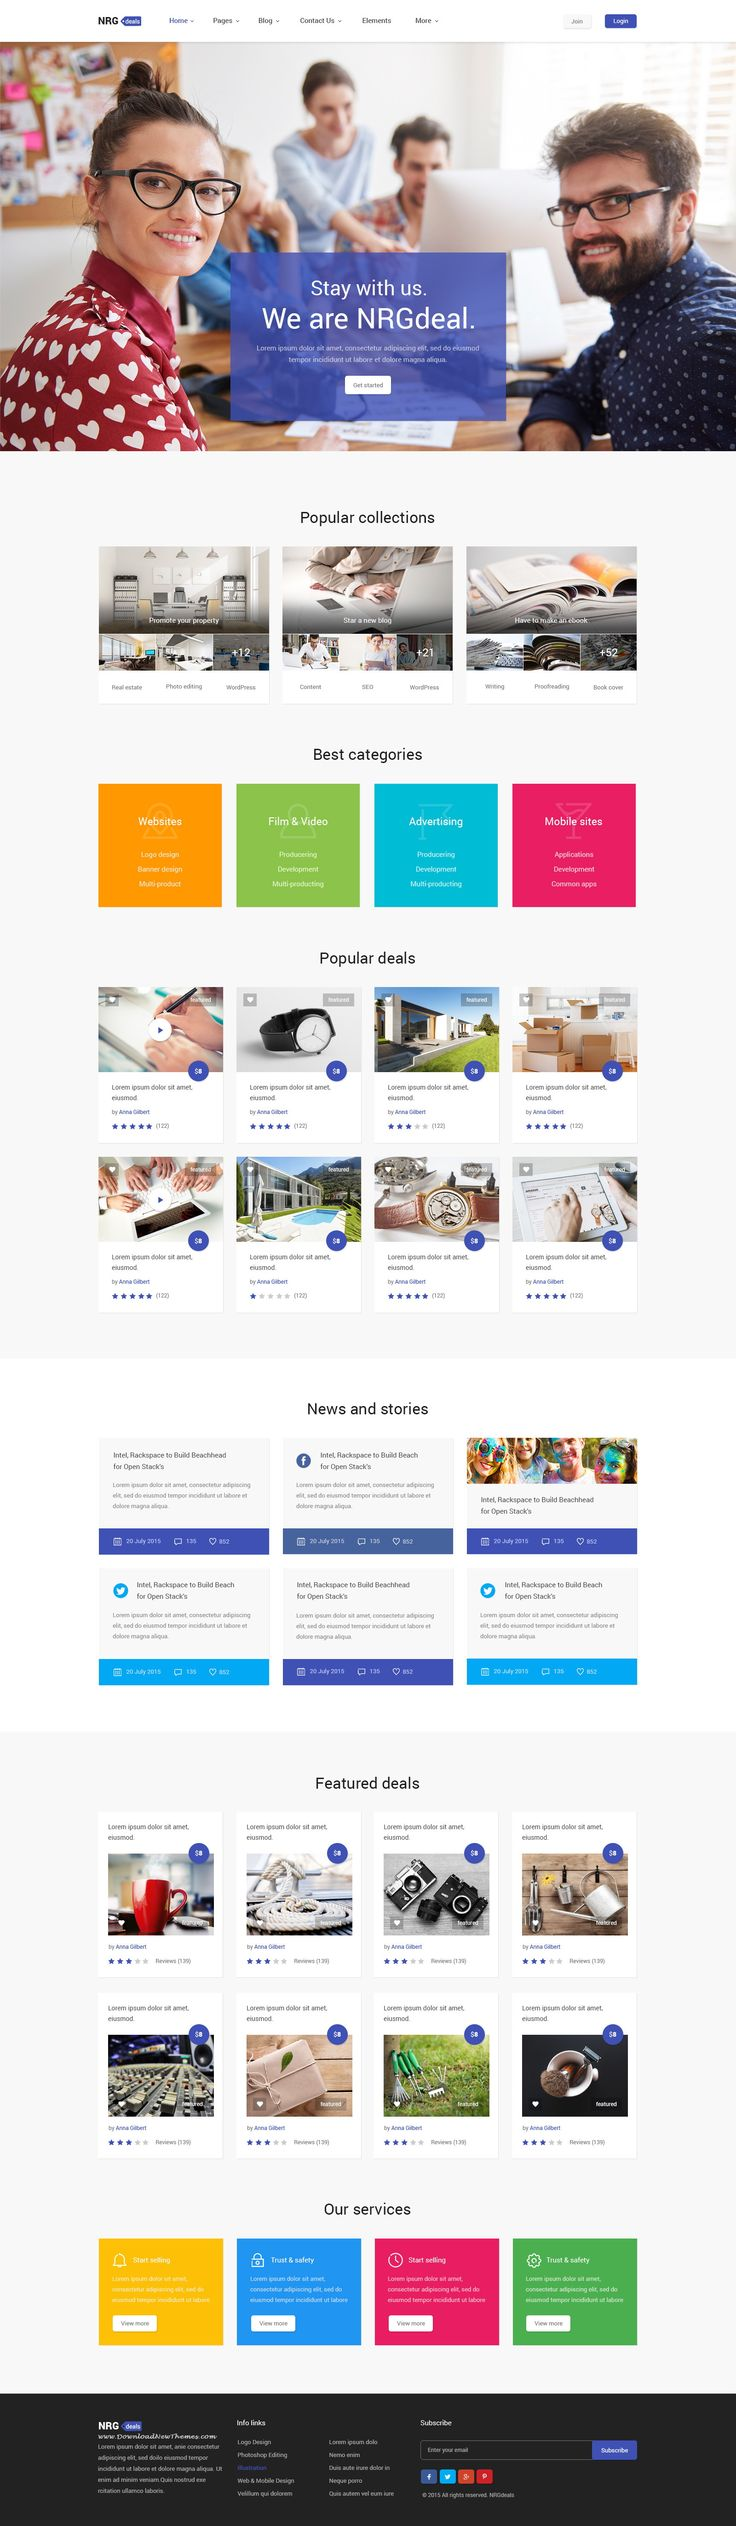 Beautiful 1.25 Button Template Thick 12 Piece Puzzle Template Regular 1st Time Job Resume 2.25 Button Template Youthful 2007 Word Templates Coloured2015 Calendar Template Microsoft 7612 Best Images About ☆~Web Design~☆ On Pinterest | Website ..